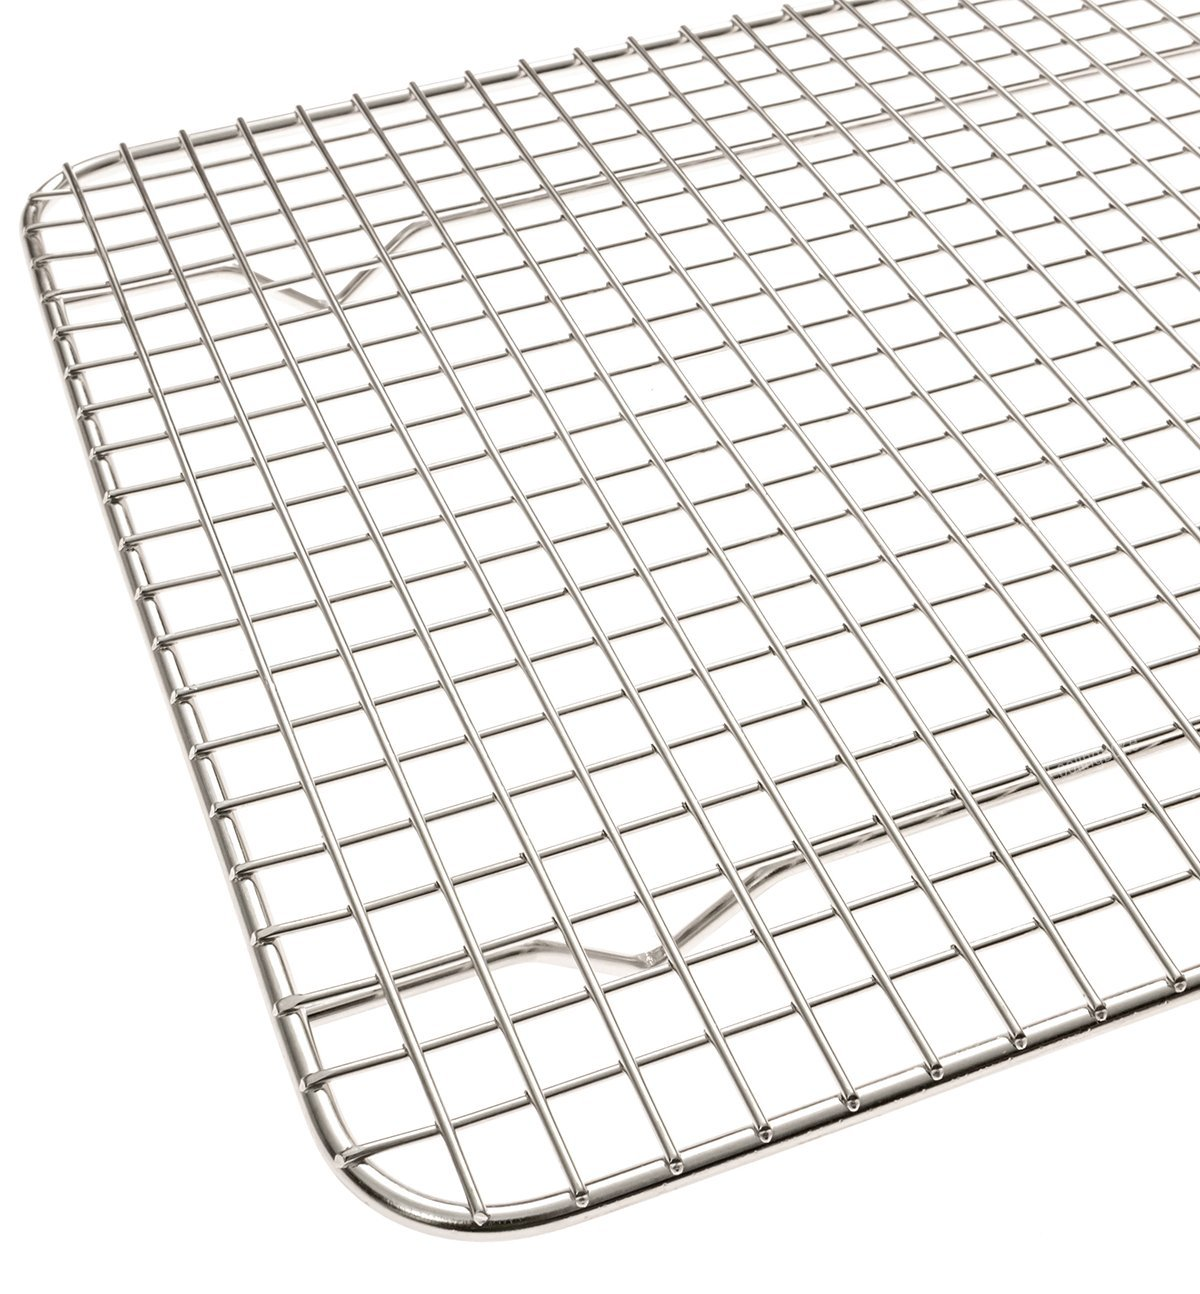 CoolingBake Stainless Steel Wire Cooling and Baking Rack Oven Safe ...